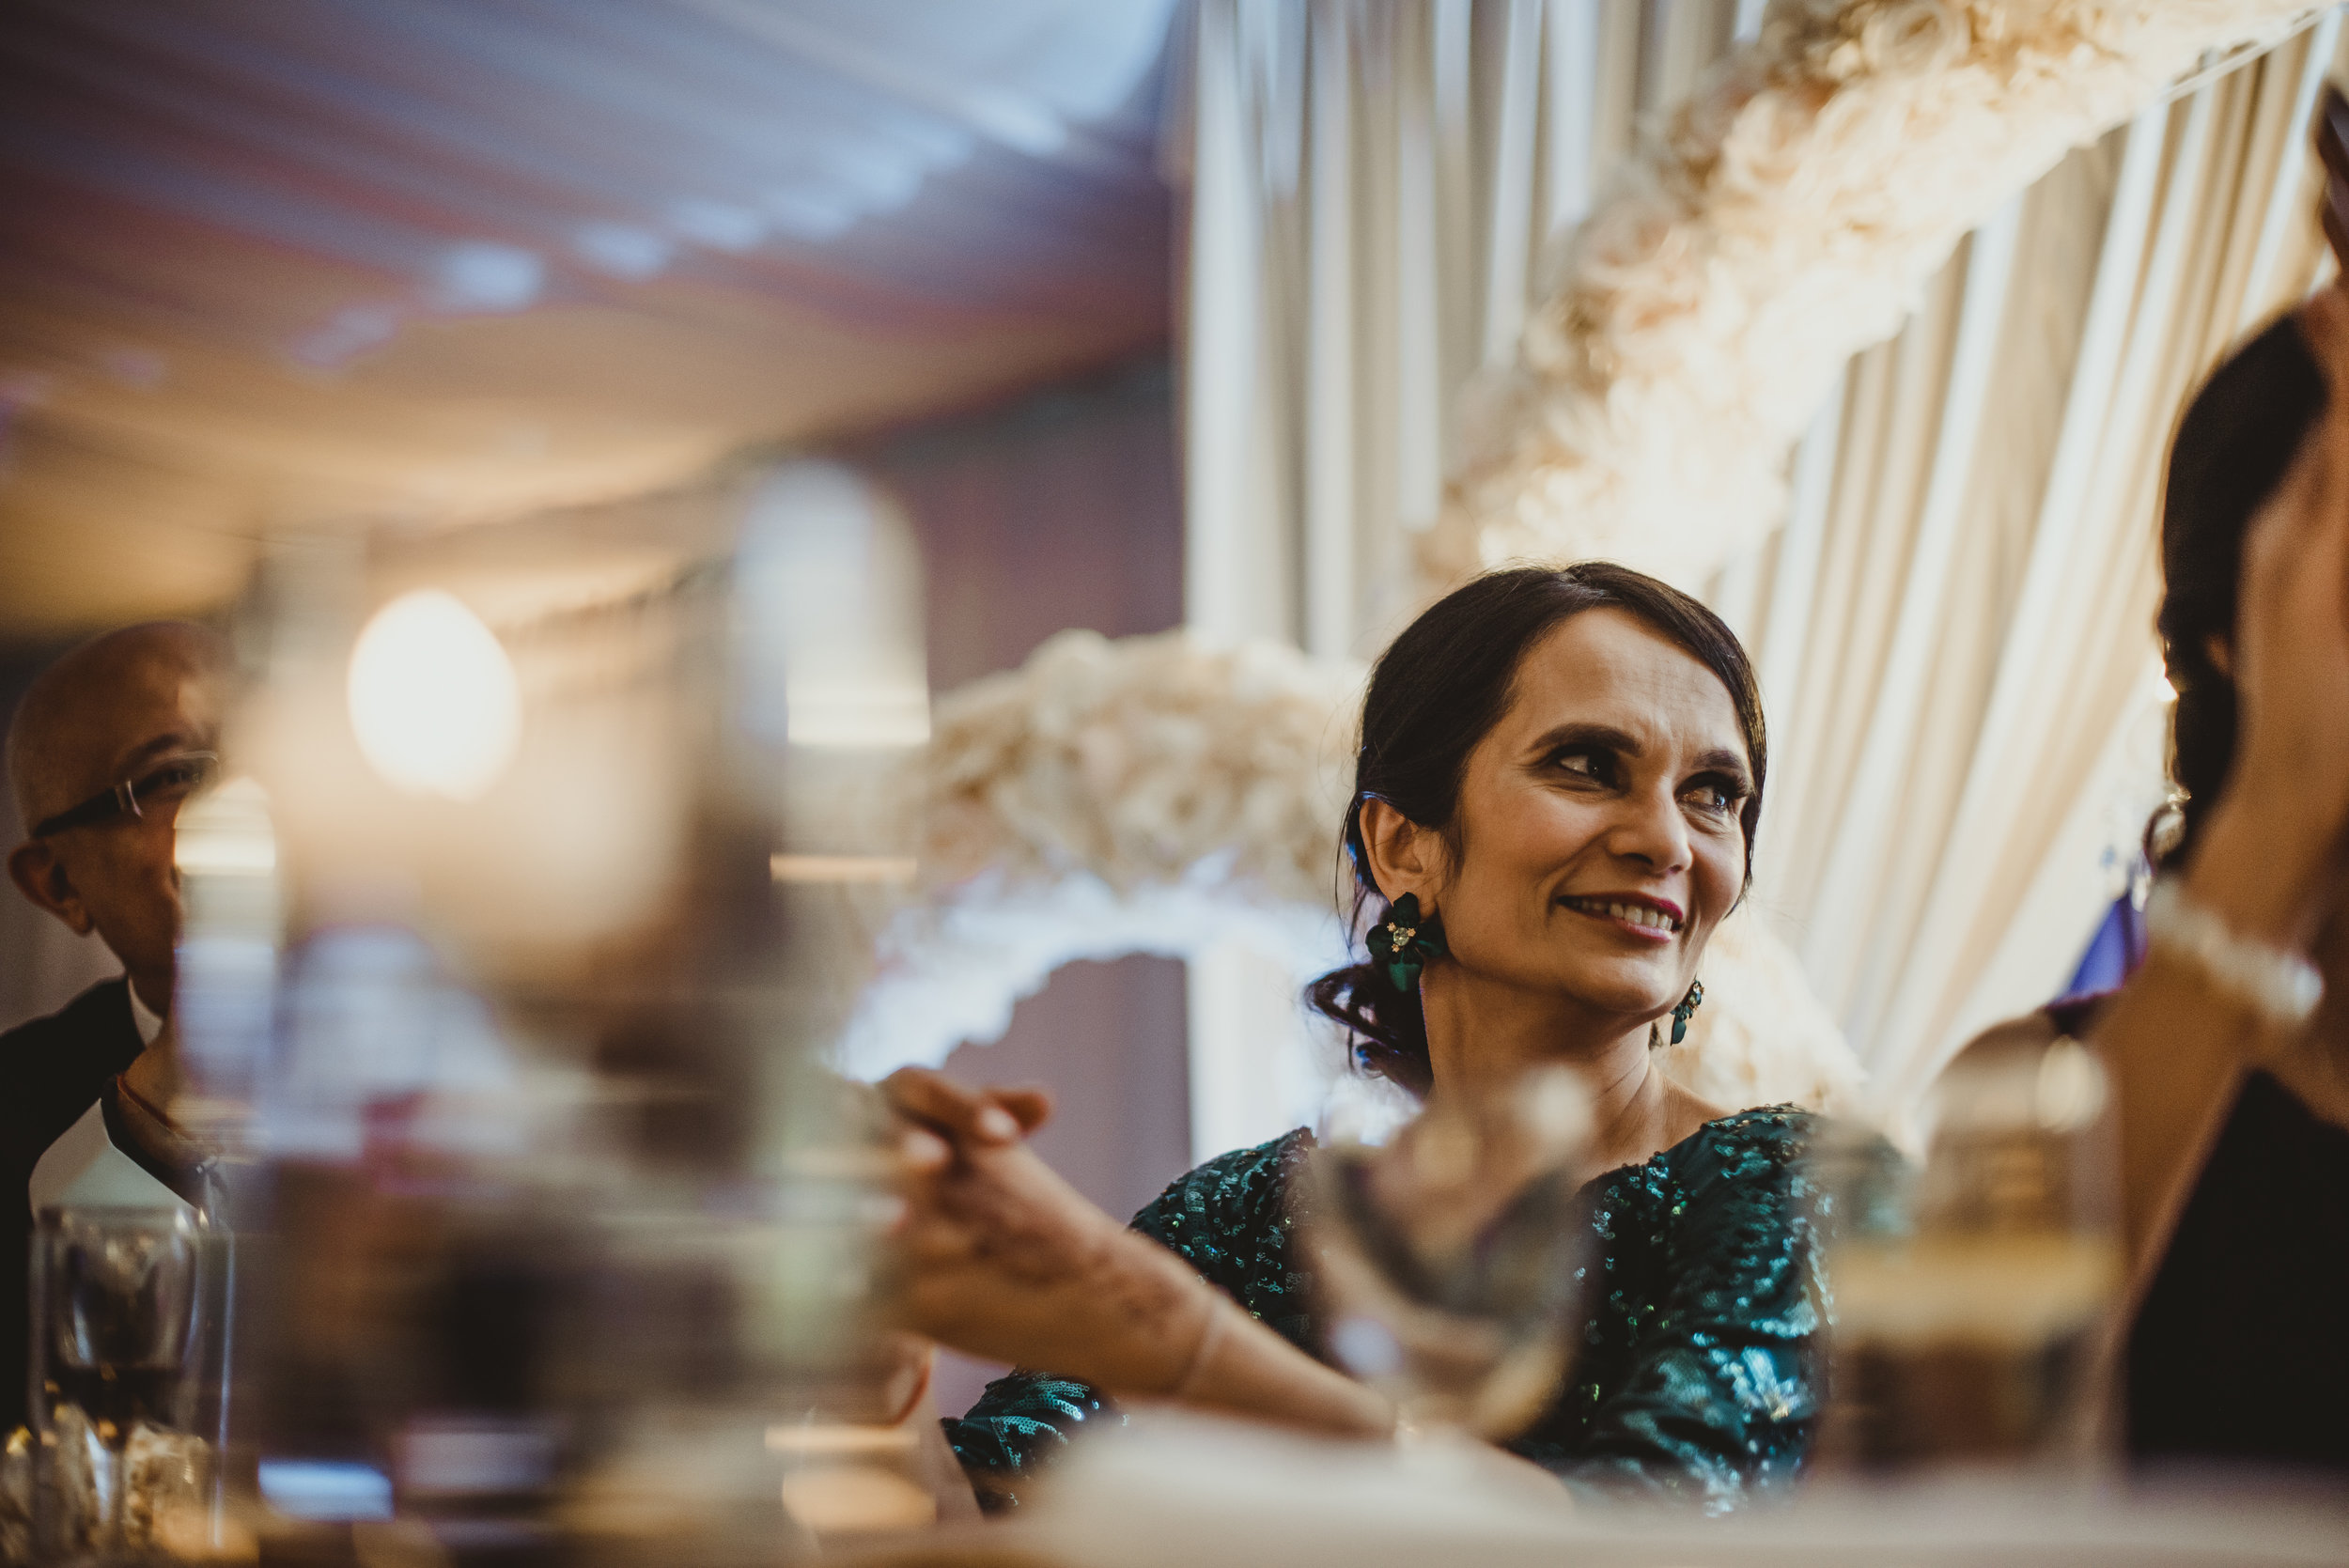 N&J_MILTON_KEYNES_WEDDING_LONDON_PHOTOGRAPHER_ASIAN_WEDDING-1090.JPG